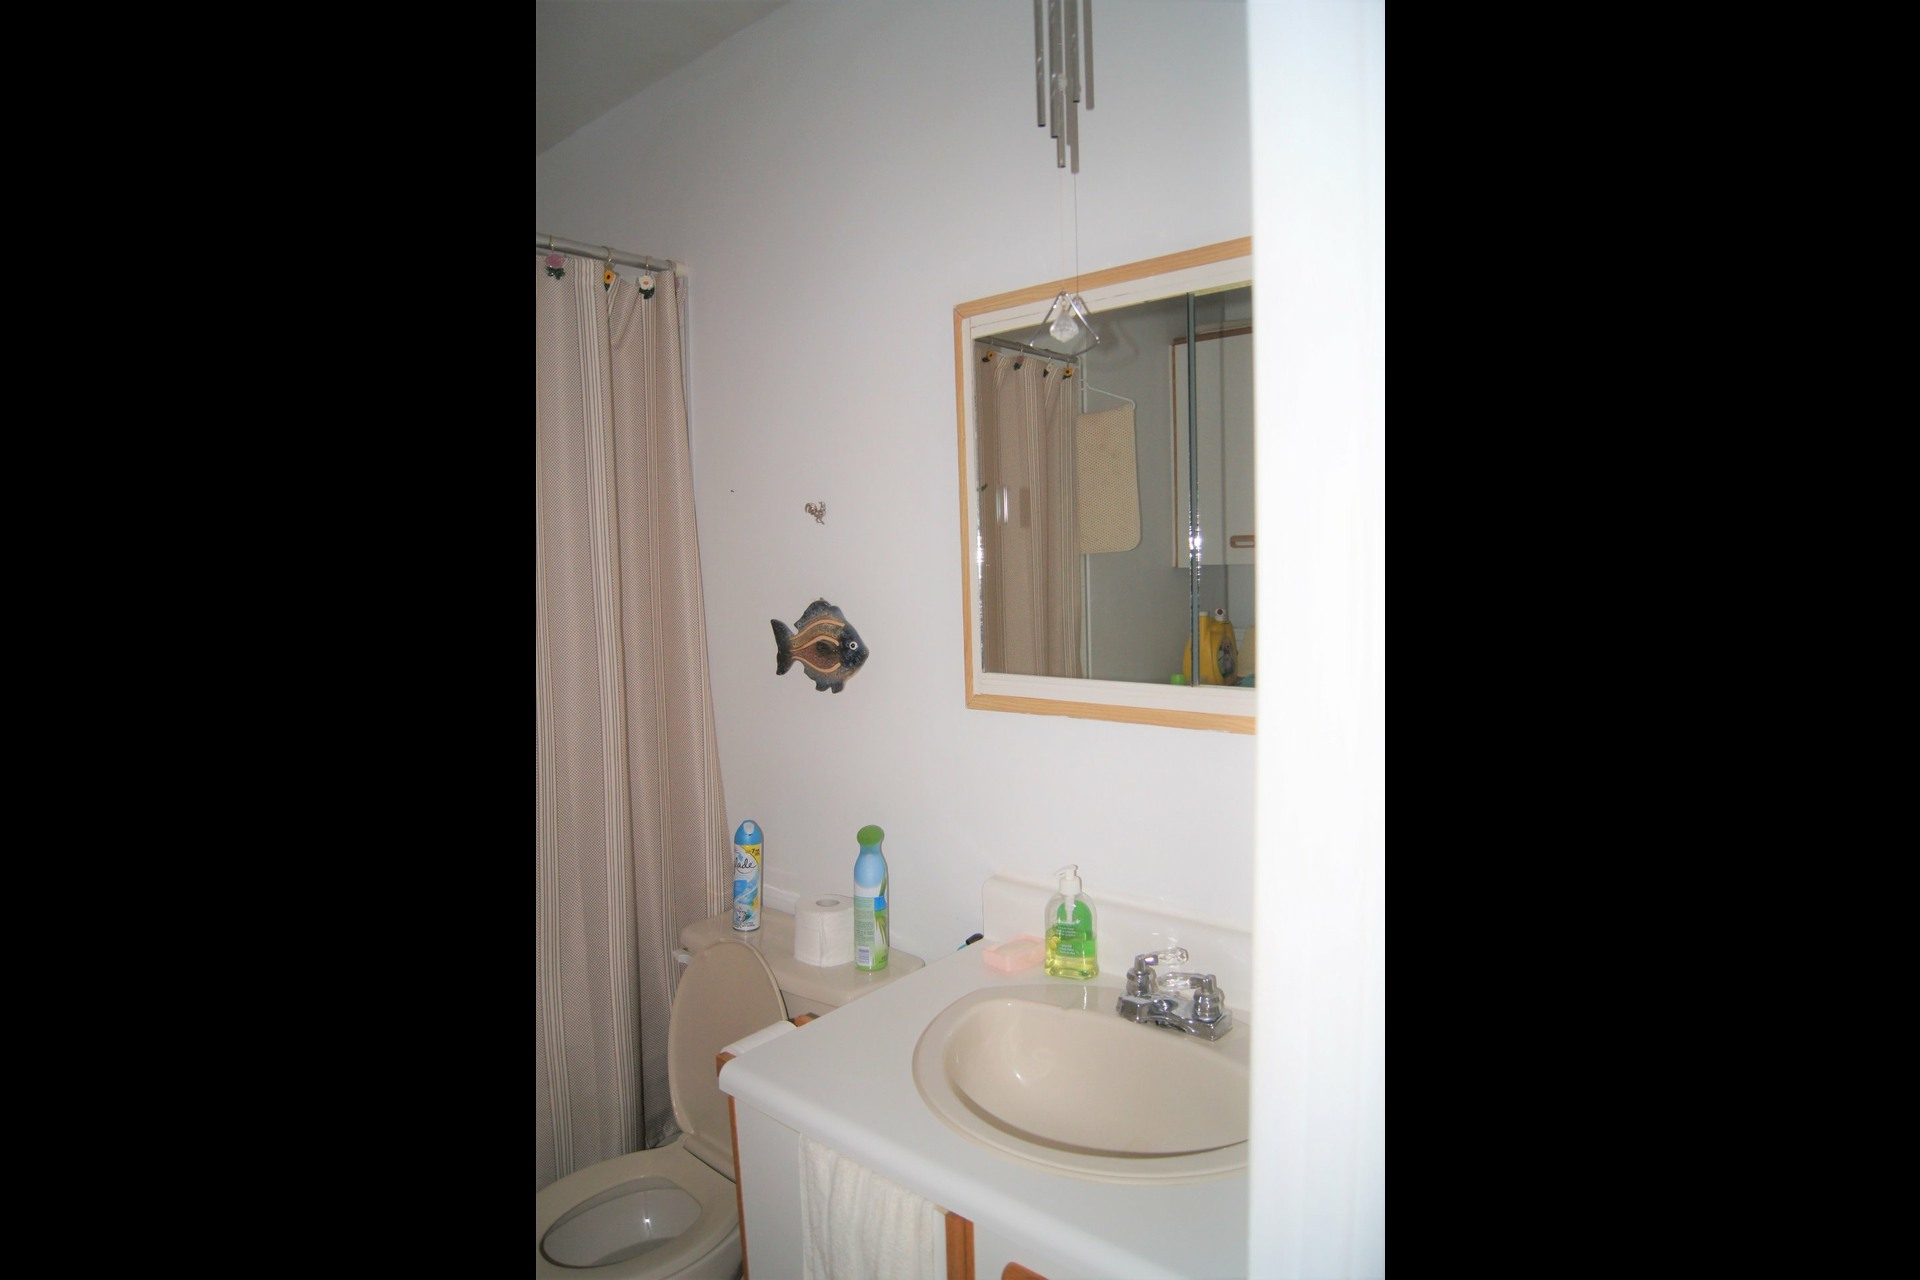 image 11 - Income property For sale La Tuque - 4 rooms